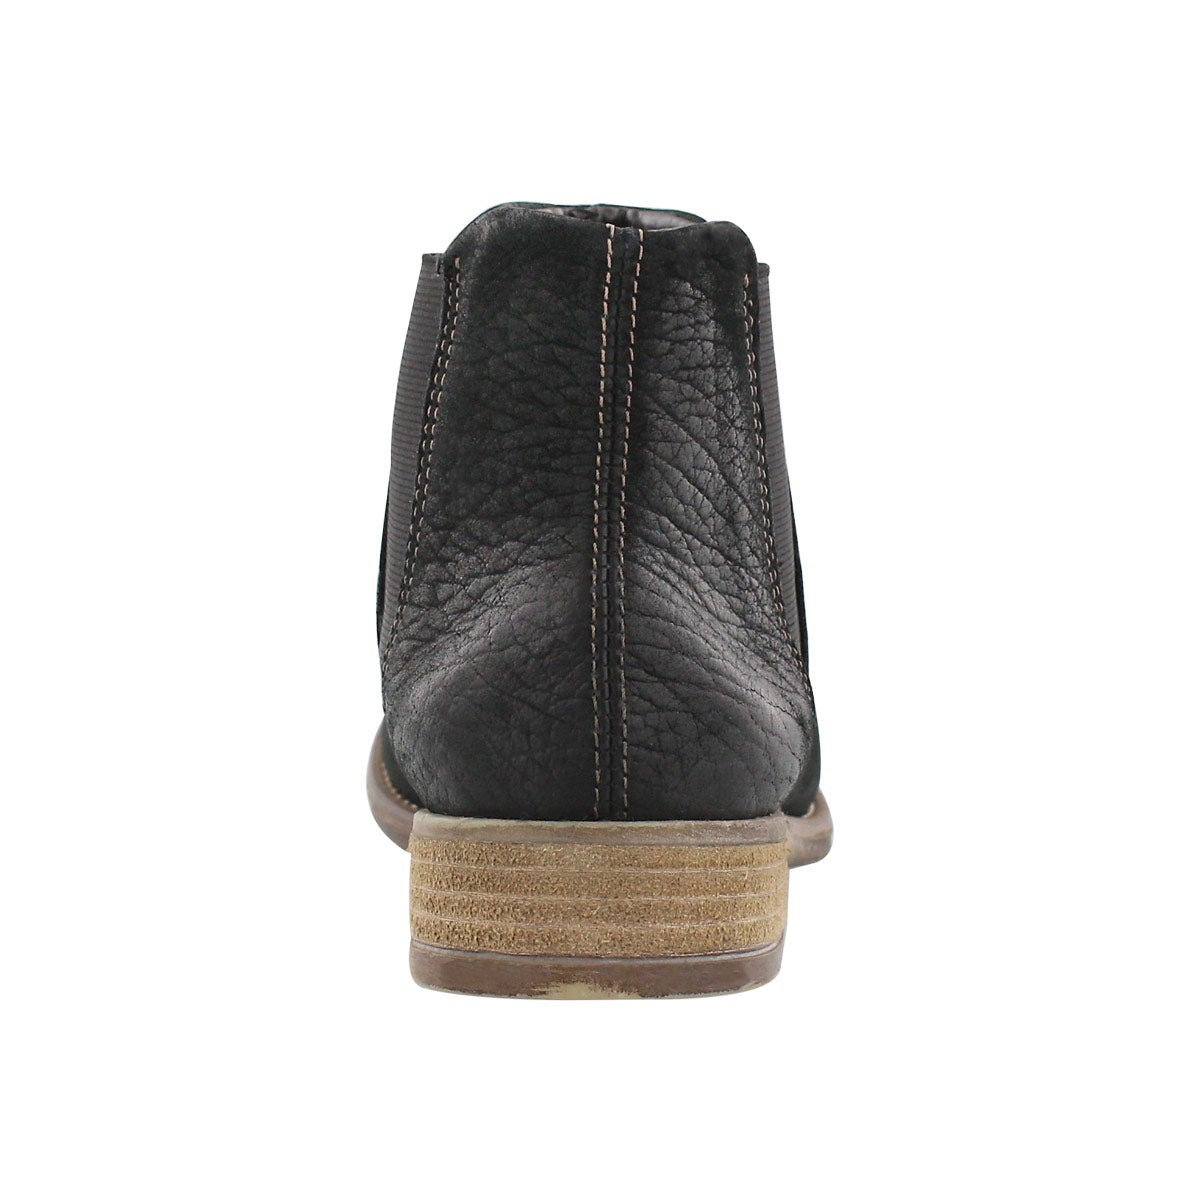 Lds Sienna 05 black ankle boot